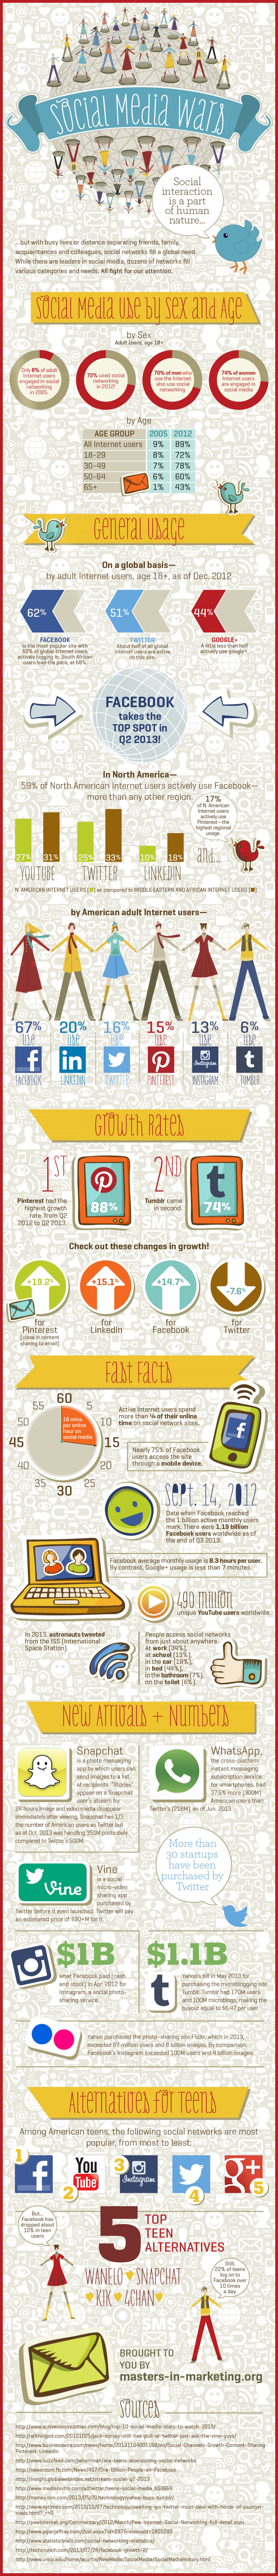 The Social Media War Infographic